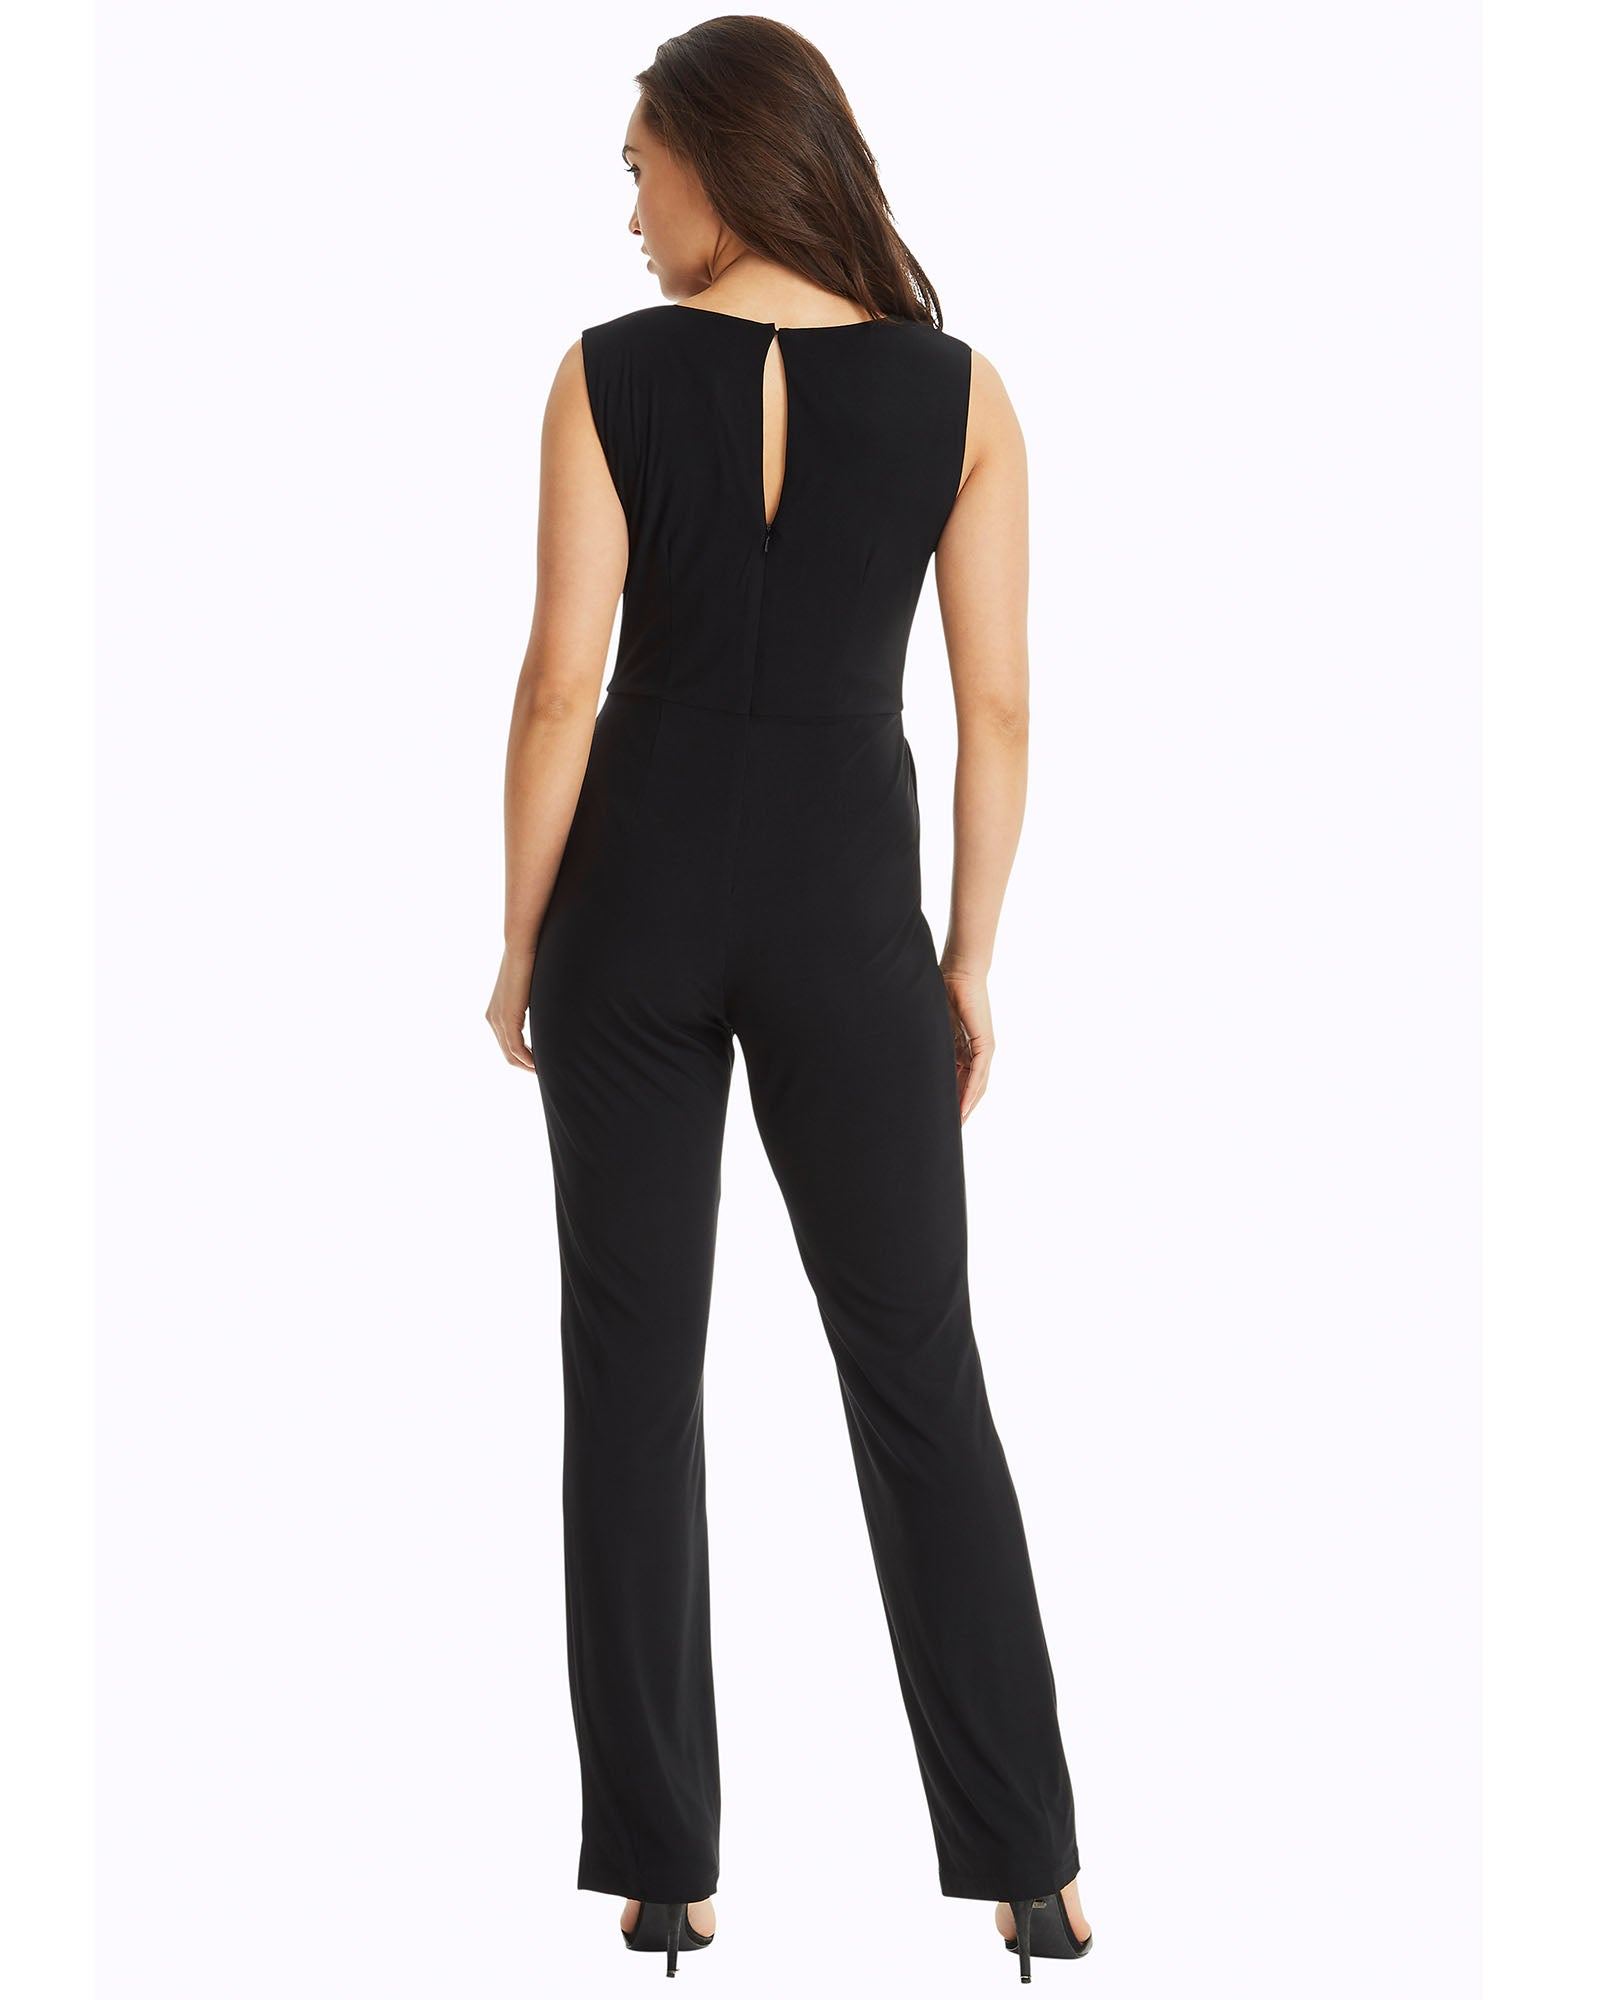 SKIVA V neck jumpsuit pantsuit straps black stretch jersey  fabric pockets zipper fully lined